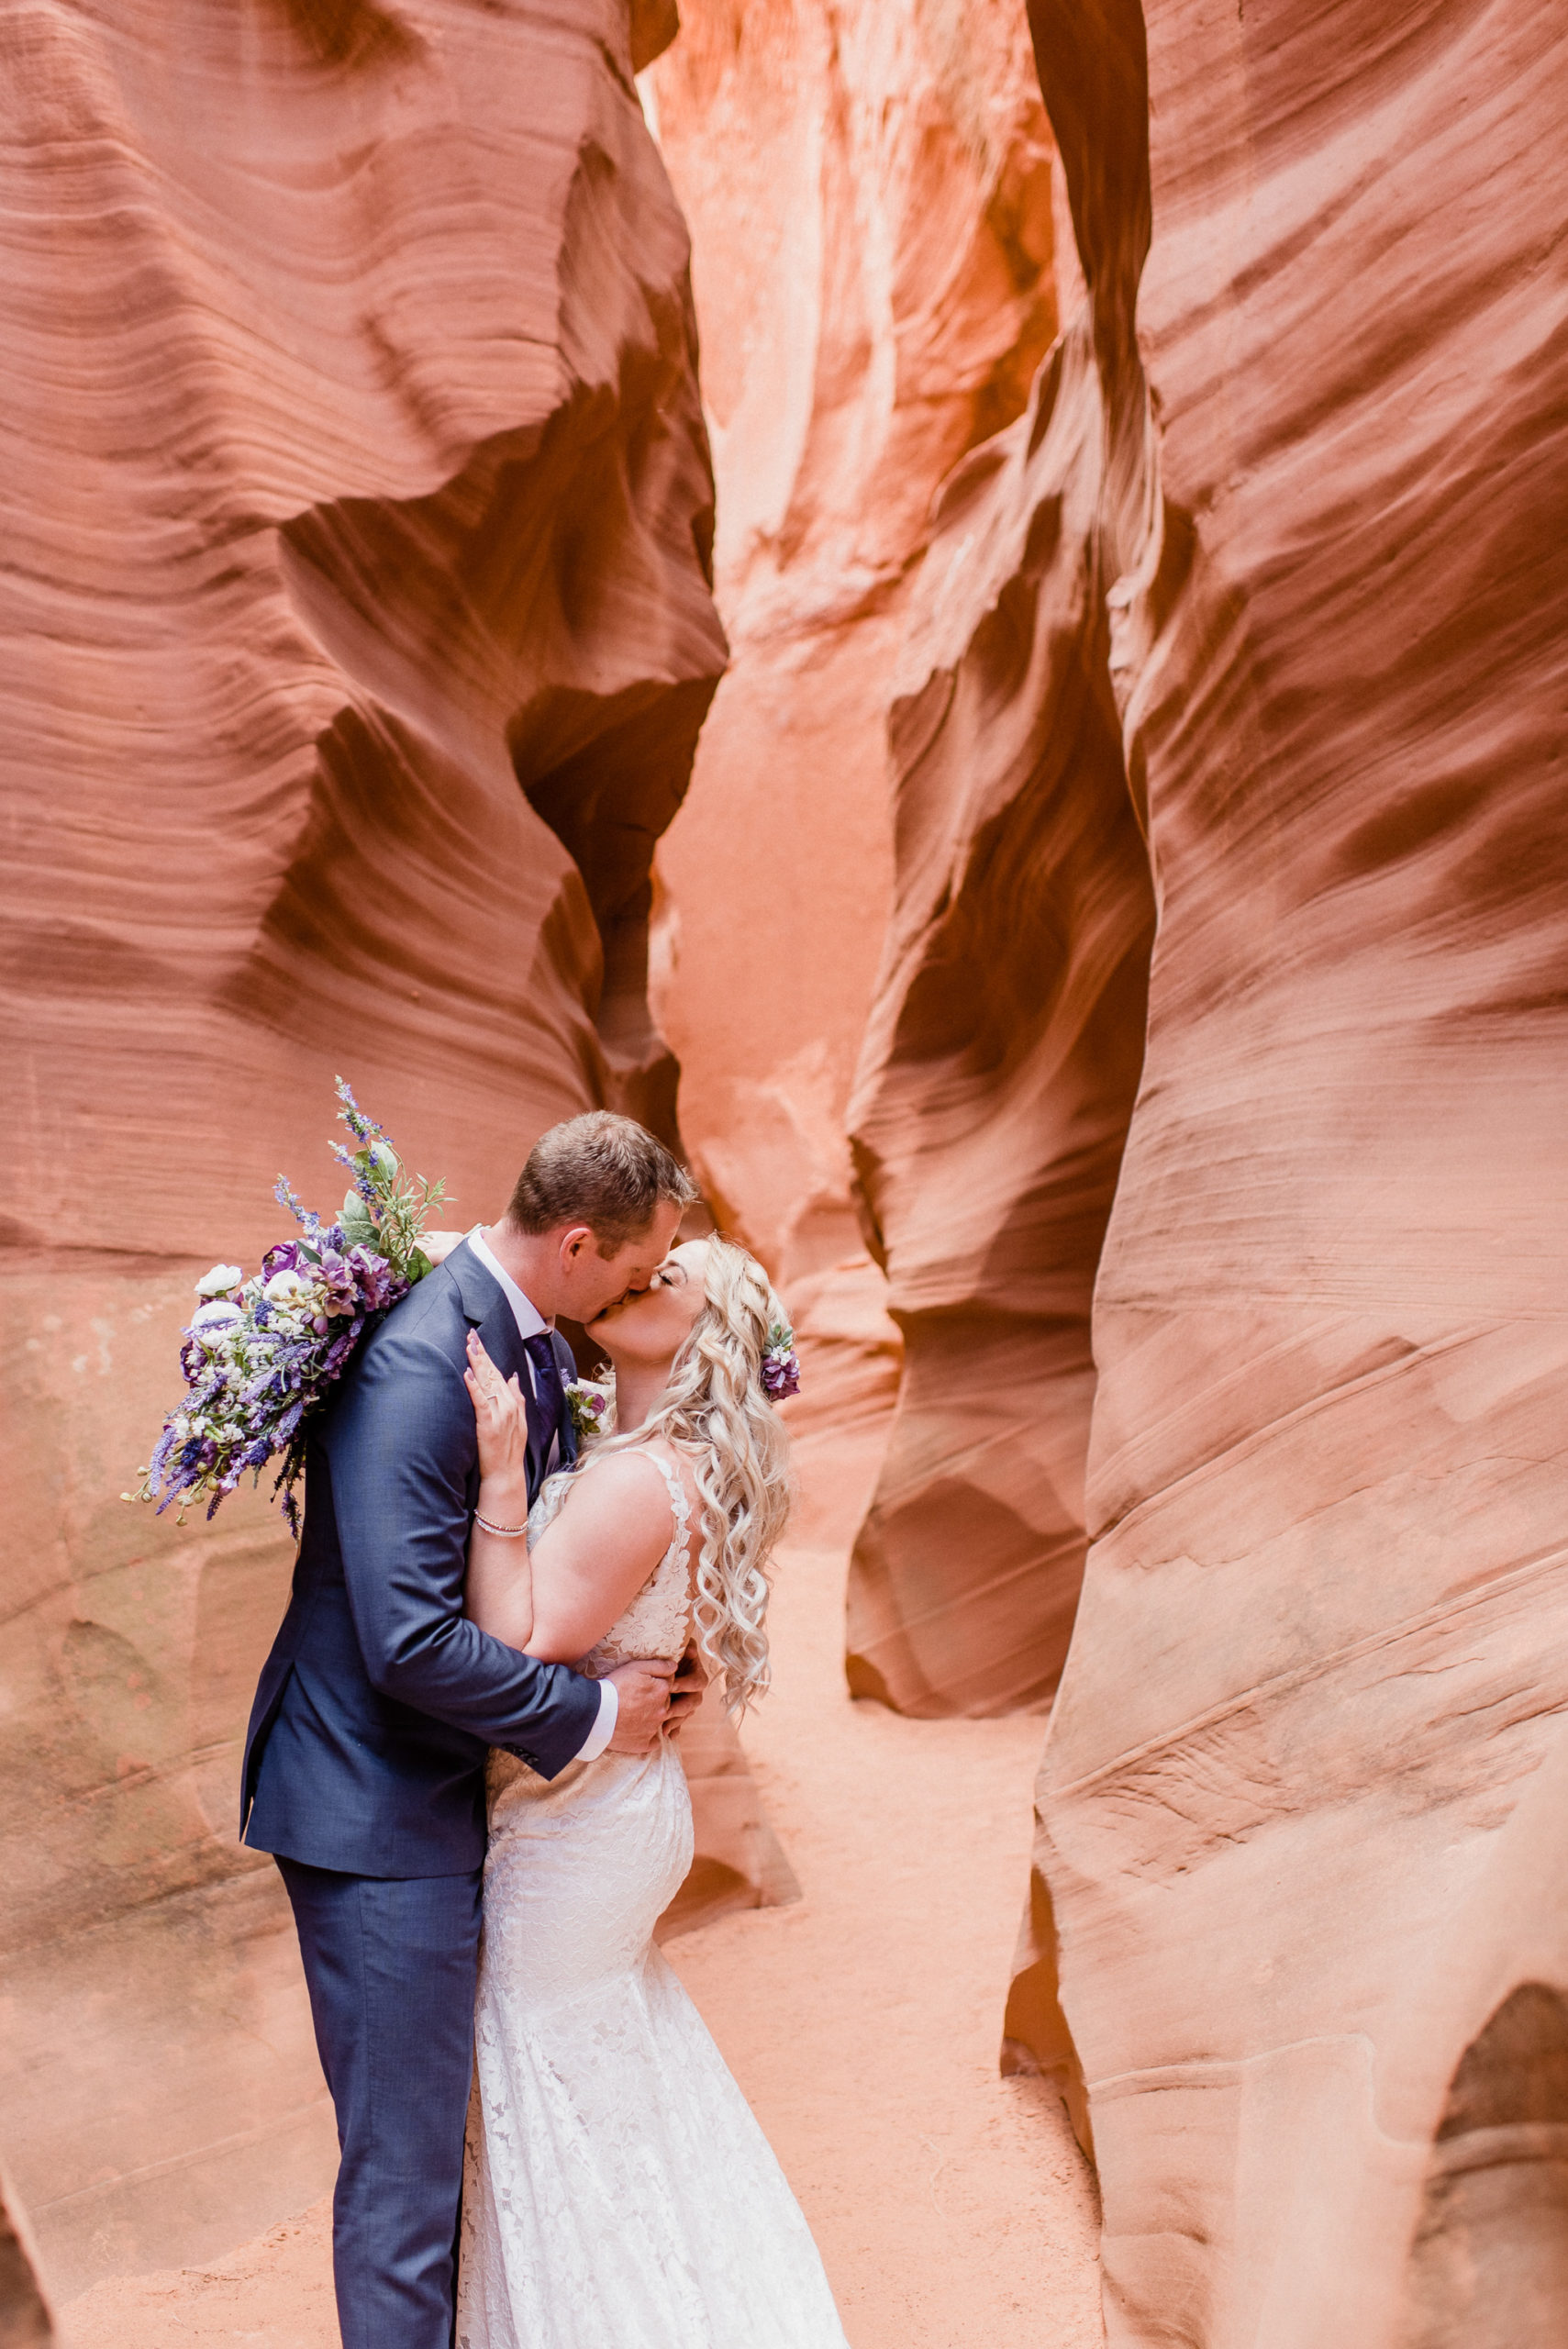 Slot Canyon wedding photos in Page, Arizona by Jenn Kavanagh Photography